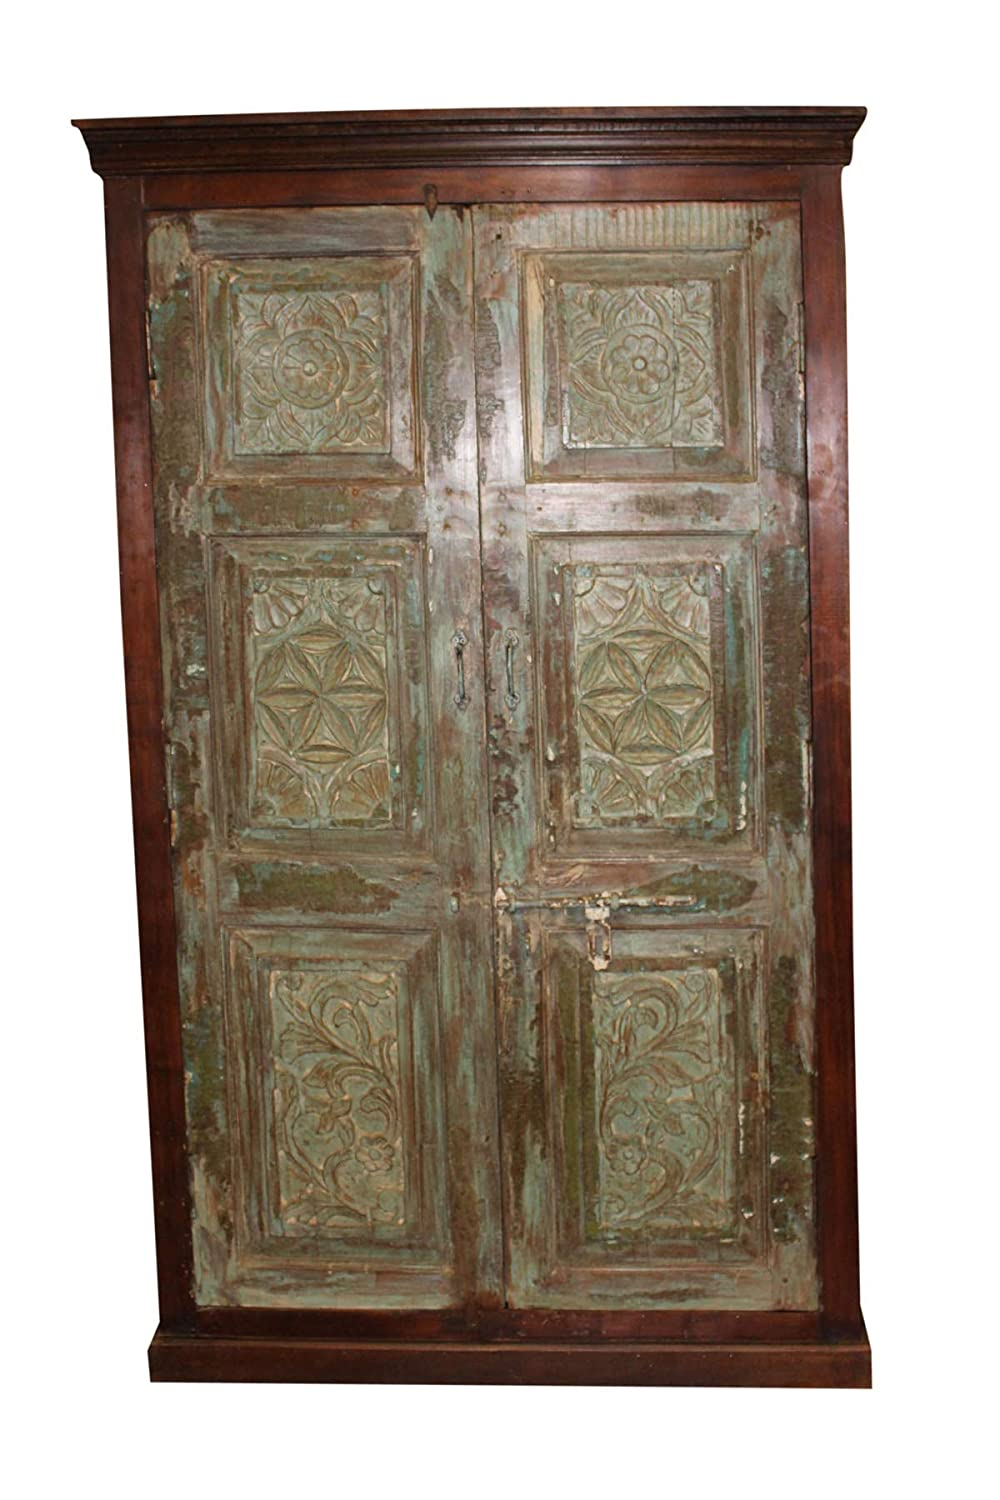 Amazon.com: Mogul Interior Indian Antique Cabinet Beautiful Hand Carving  Solid Wood Green Rustic Vintage Armoire Storage: Kitchen & Dining - Amazon.com: Mogul Interior Indian Antique Cabinet Beautiful Hand